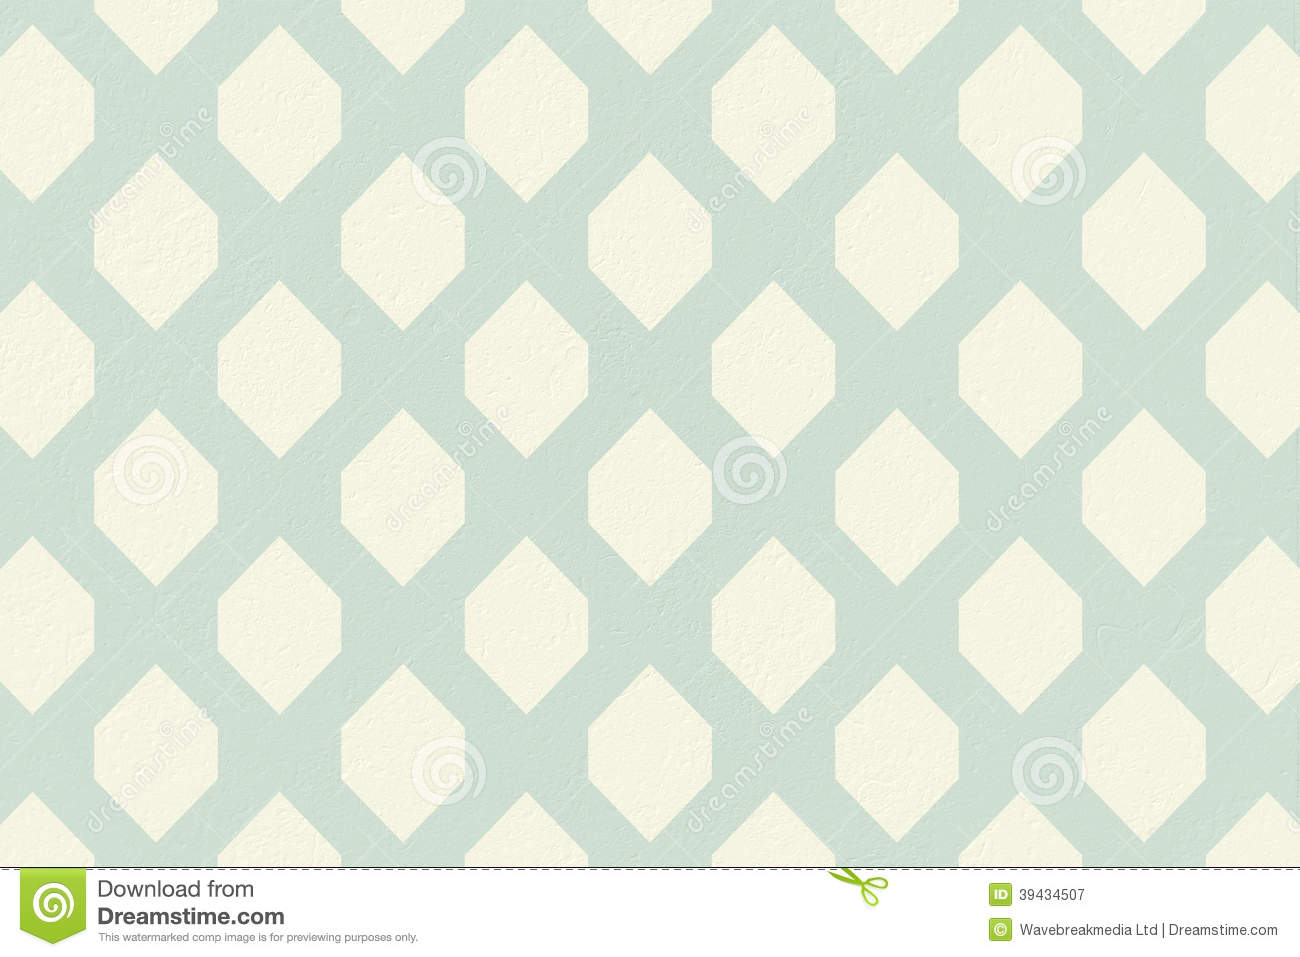 Blue And Cream Patterned Wallpaper Download Preview